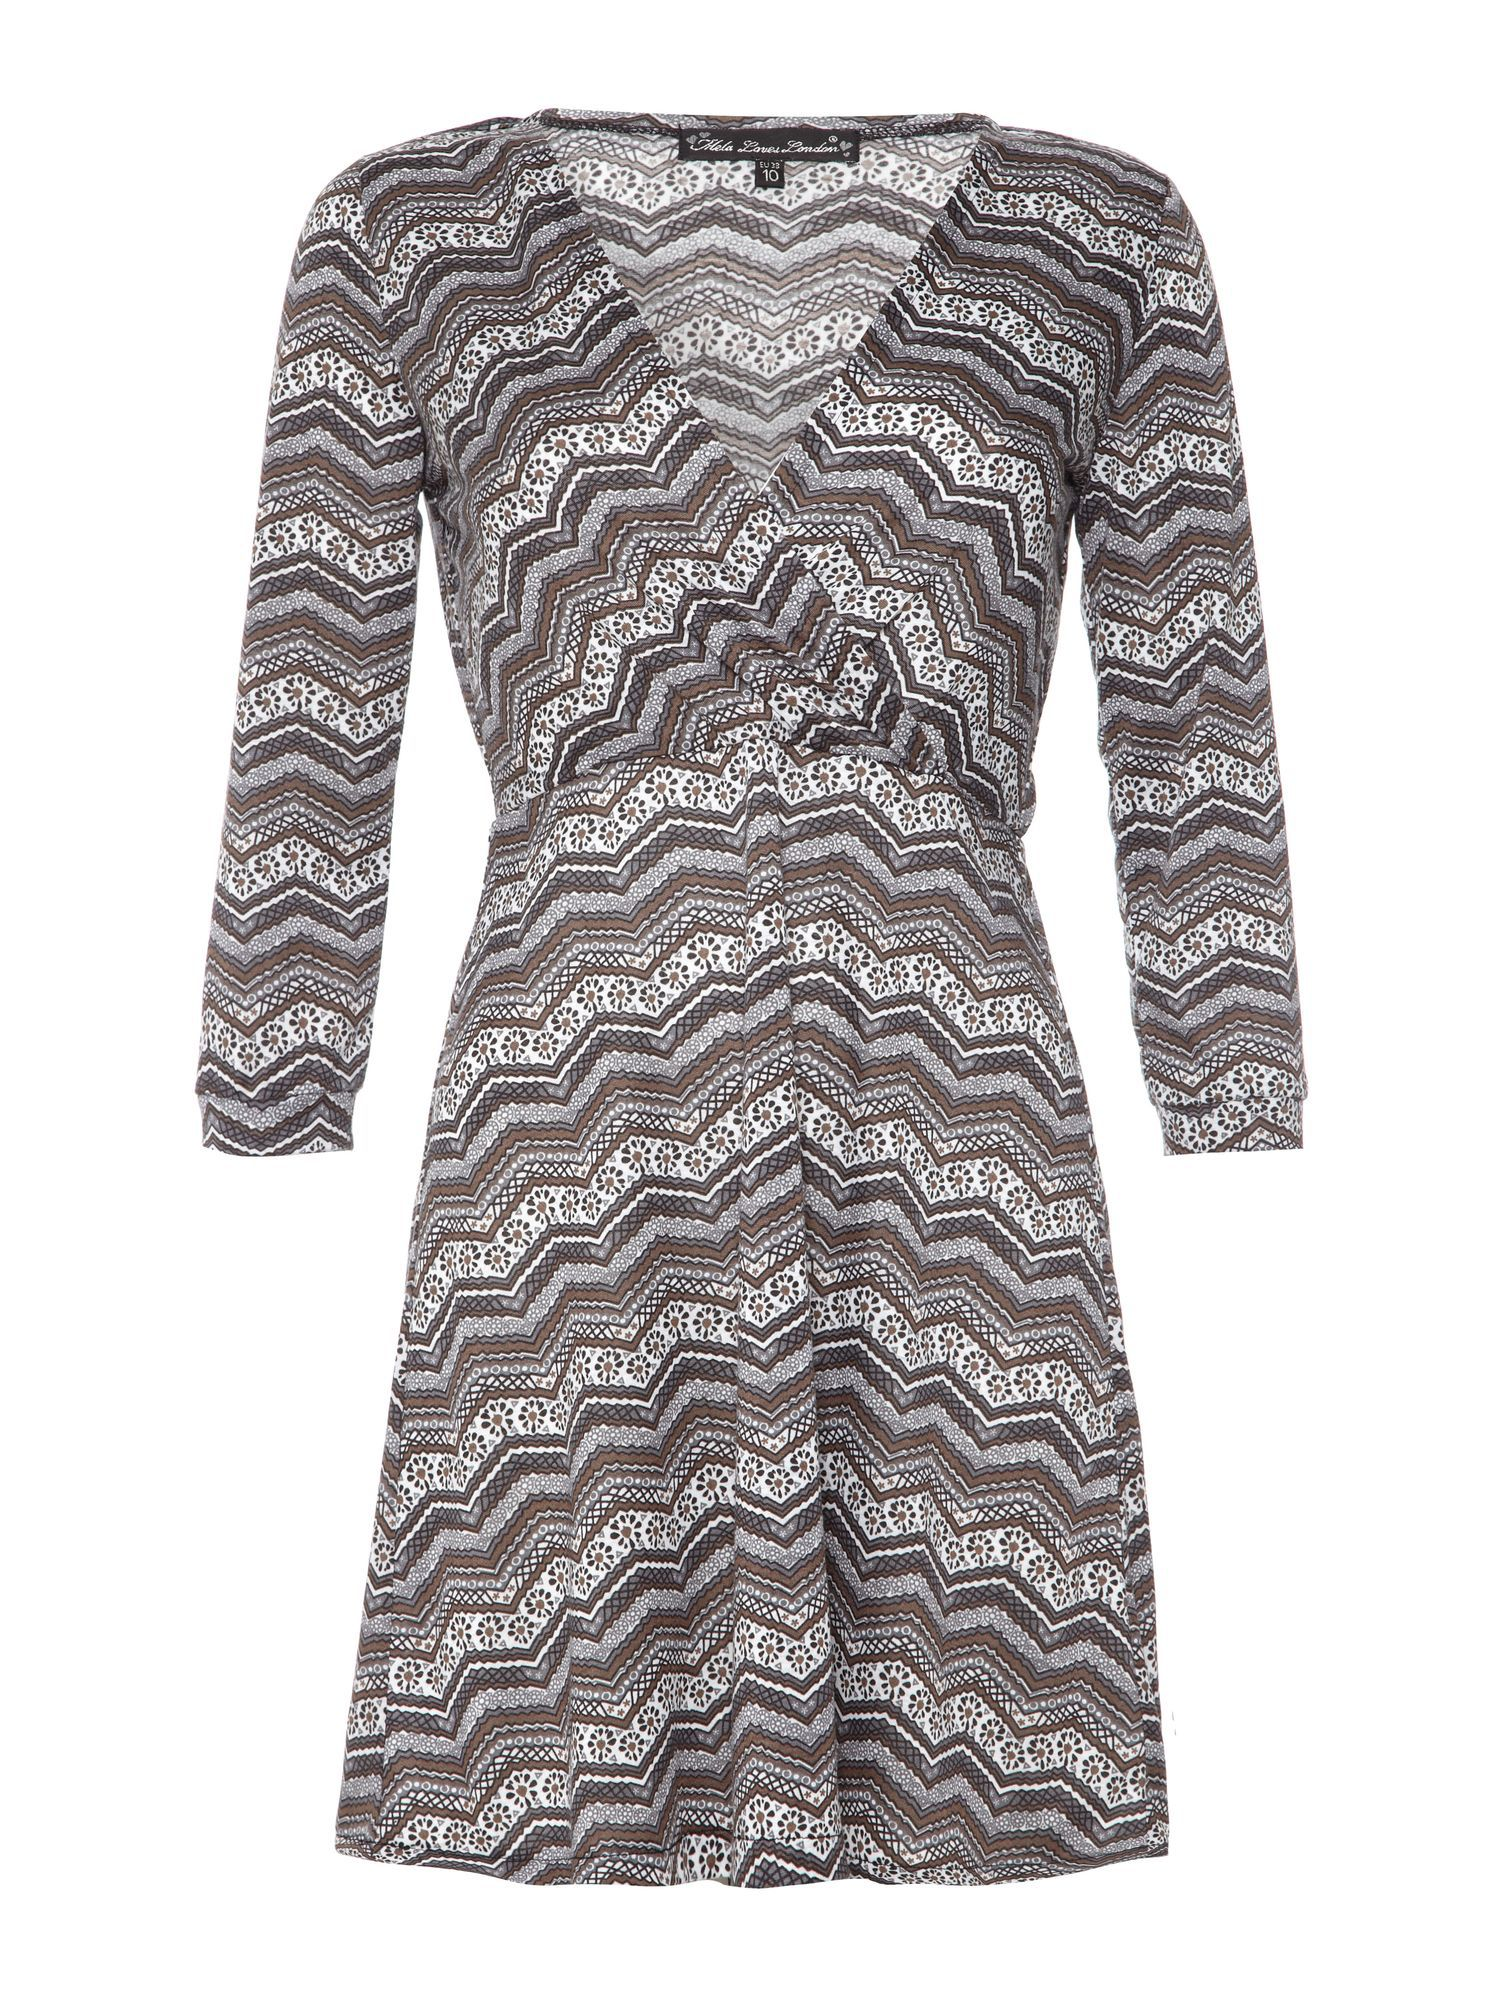 Zigzag v neck dress